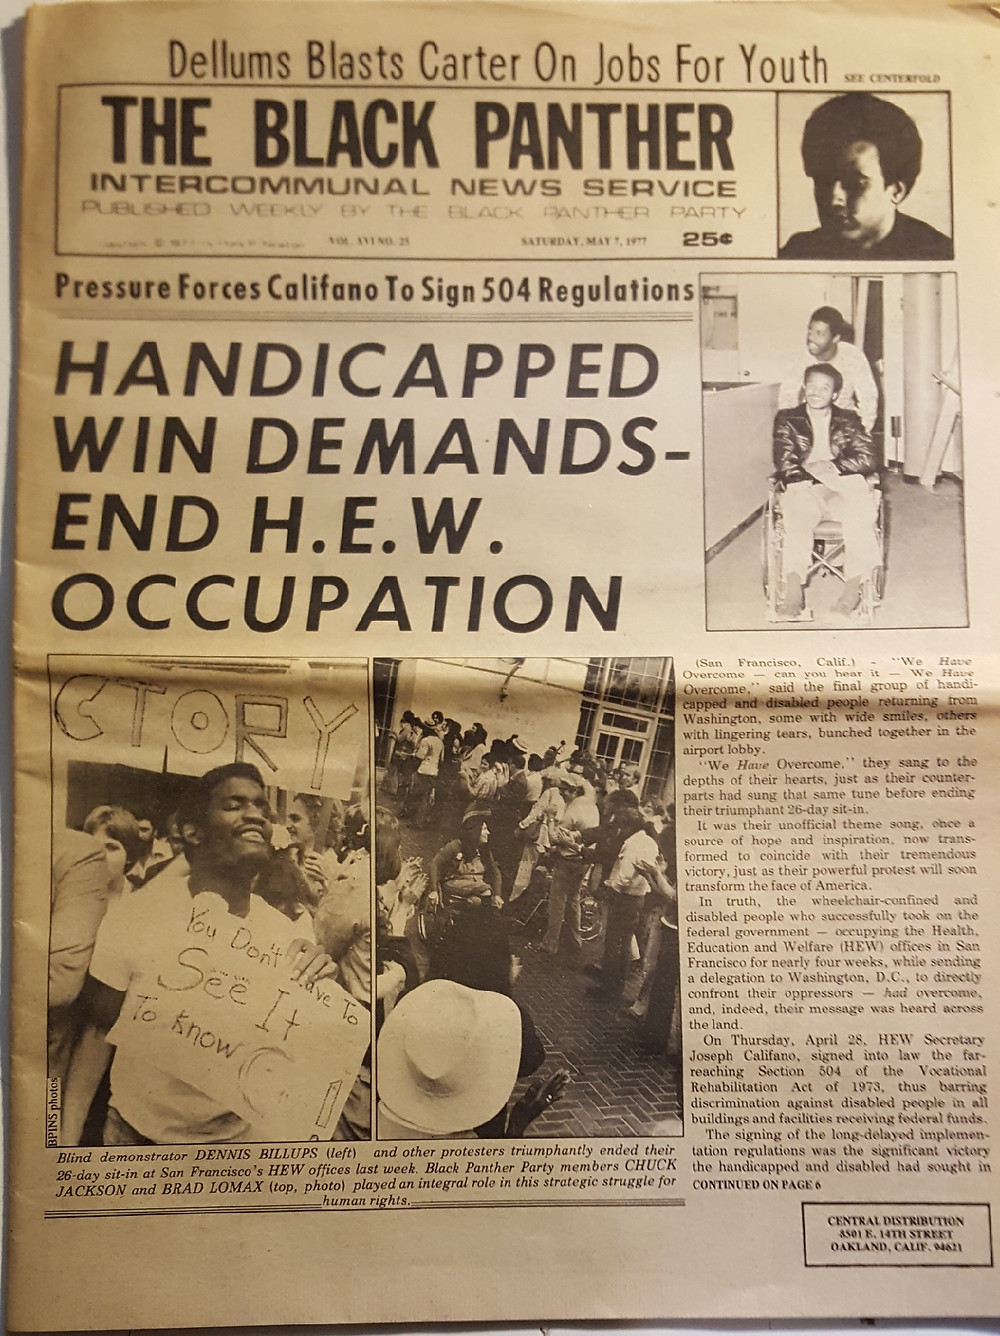 Newspaper front page. Handicapped win demnds-end HEW occupation. Photo underneath the headline shows a blind black man called Dennis Billups. To the right of the headling is a photo of a black man in a wheelchair and a dark jacket and standing behind him, another black man in a white shirt.